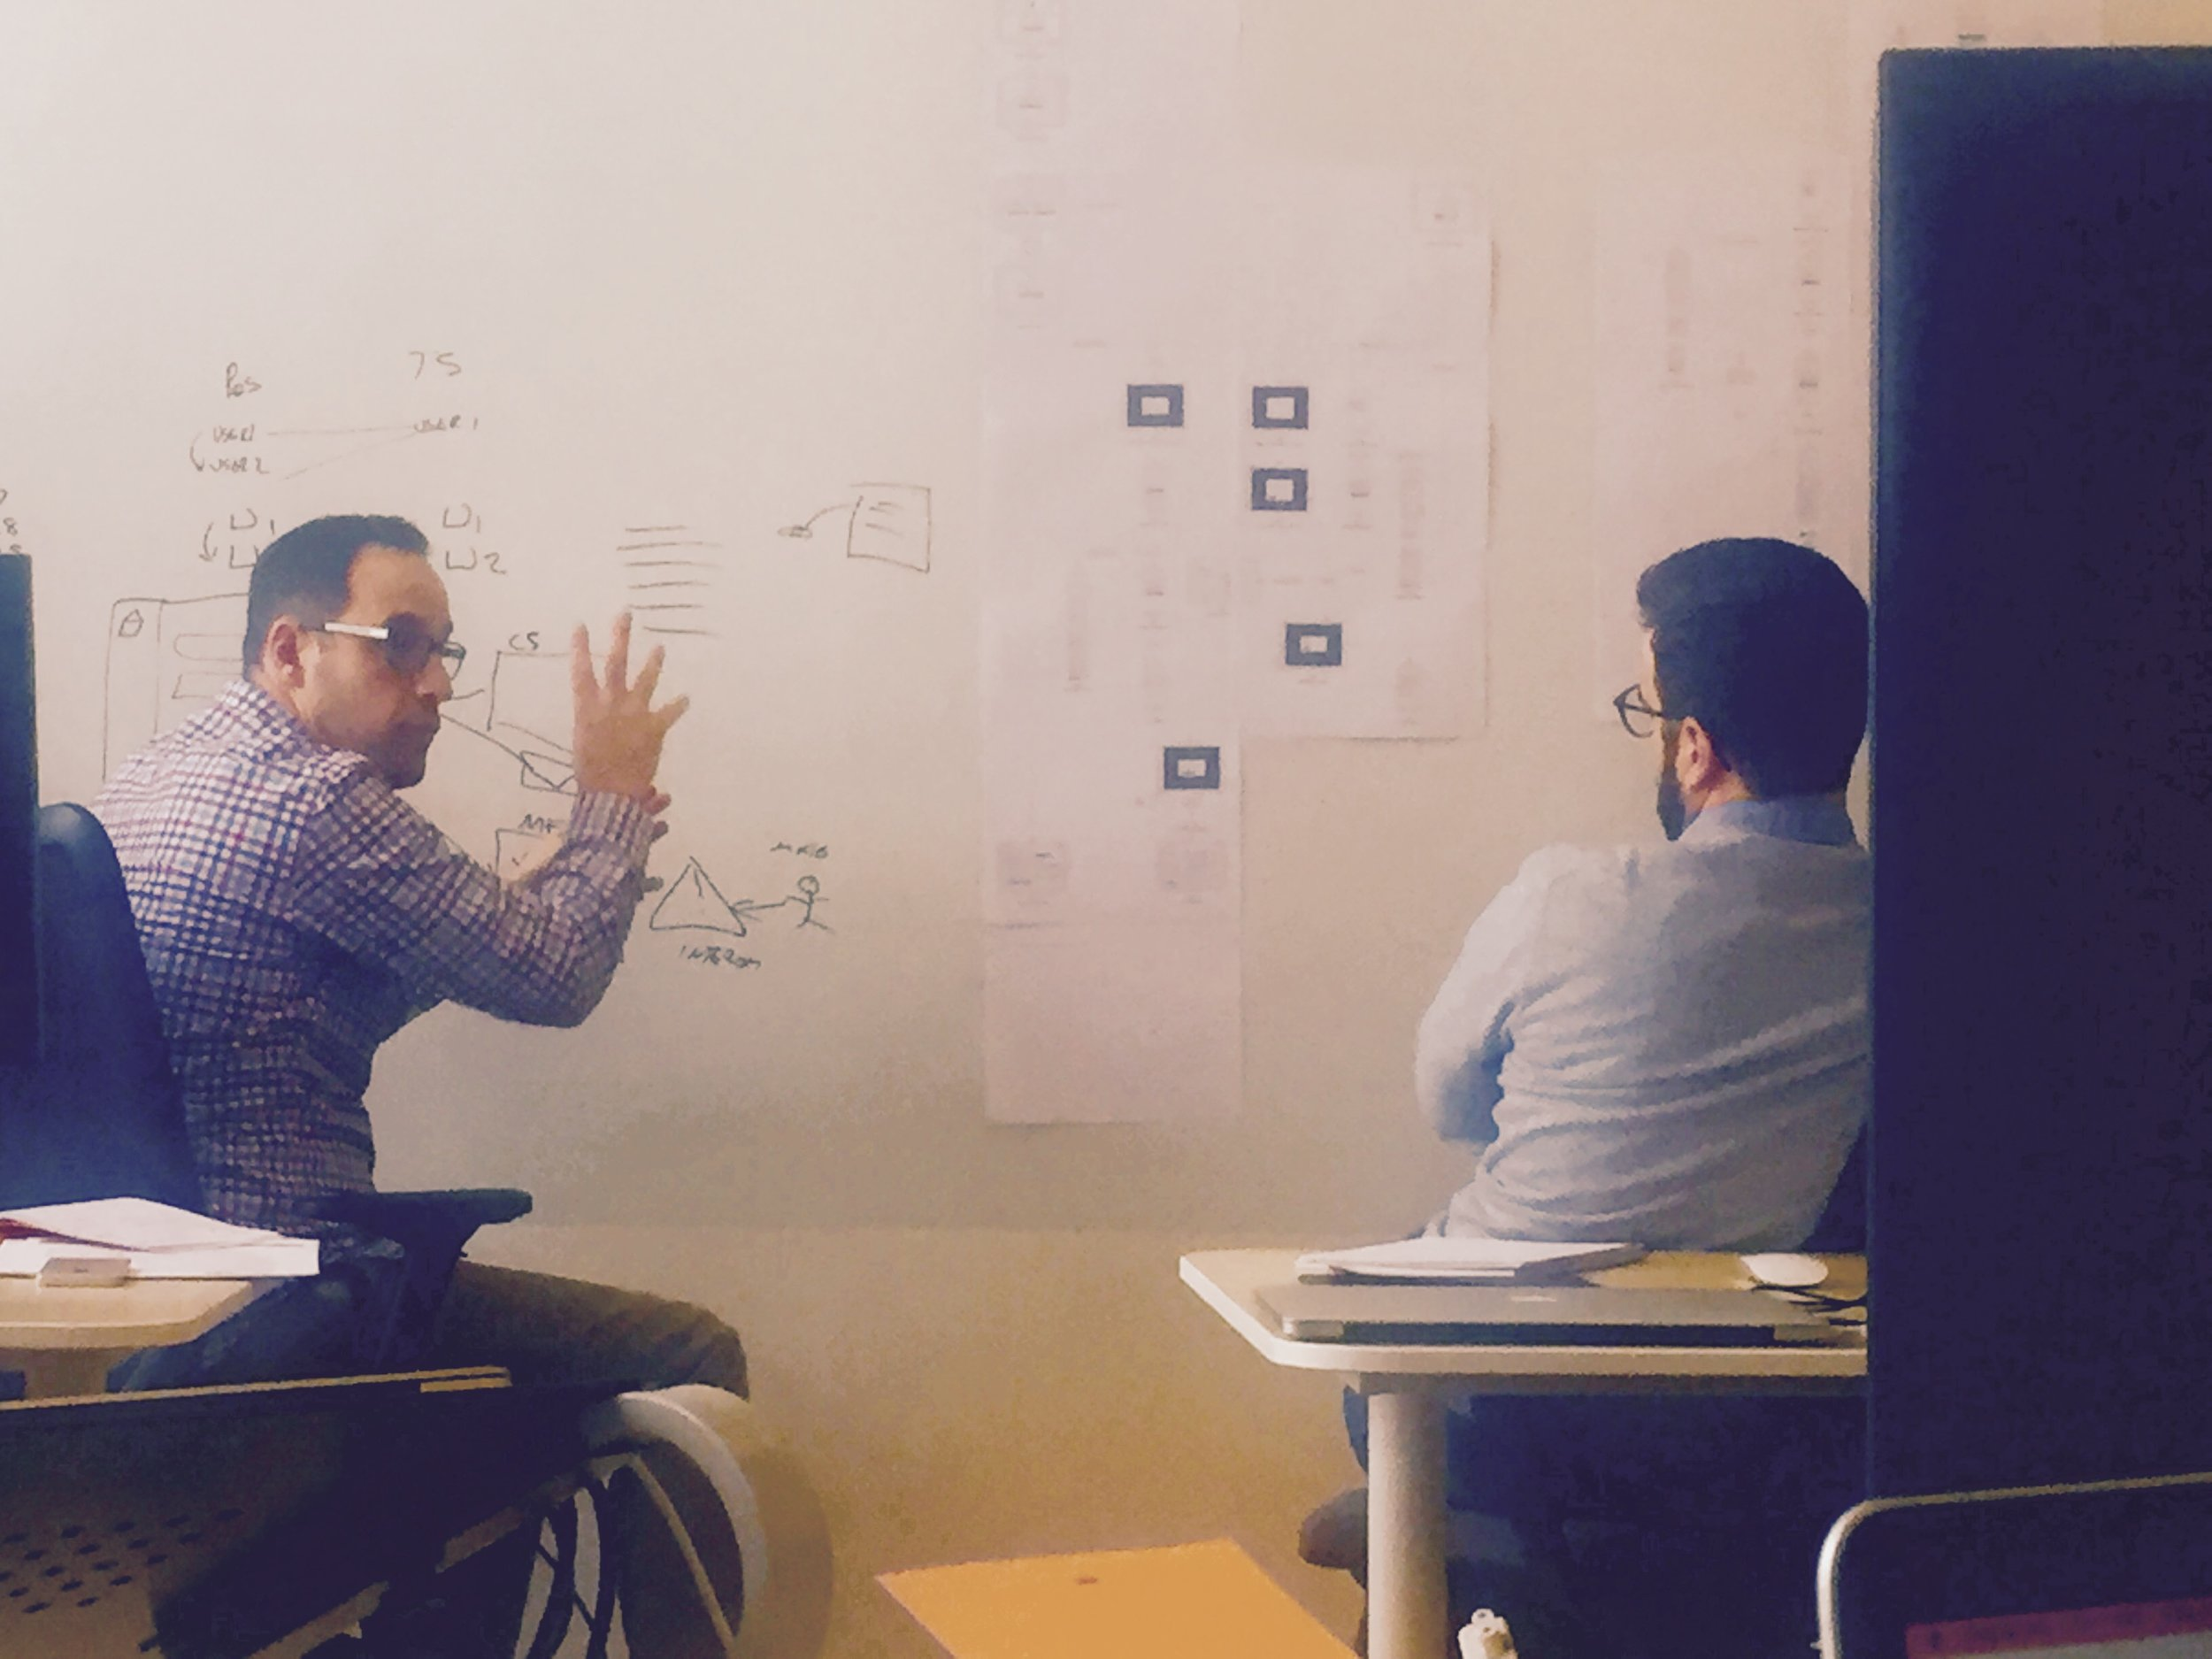 Whiteboarding our next product release